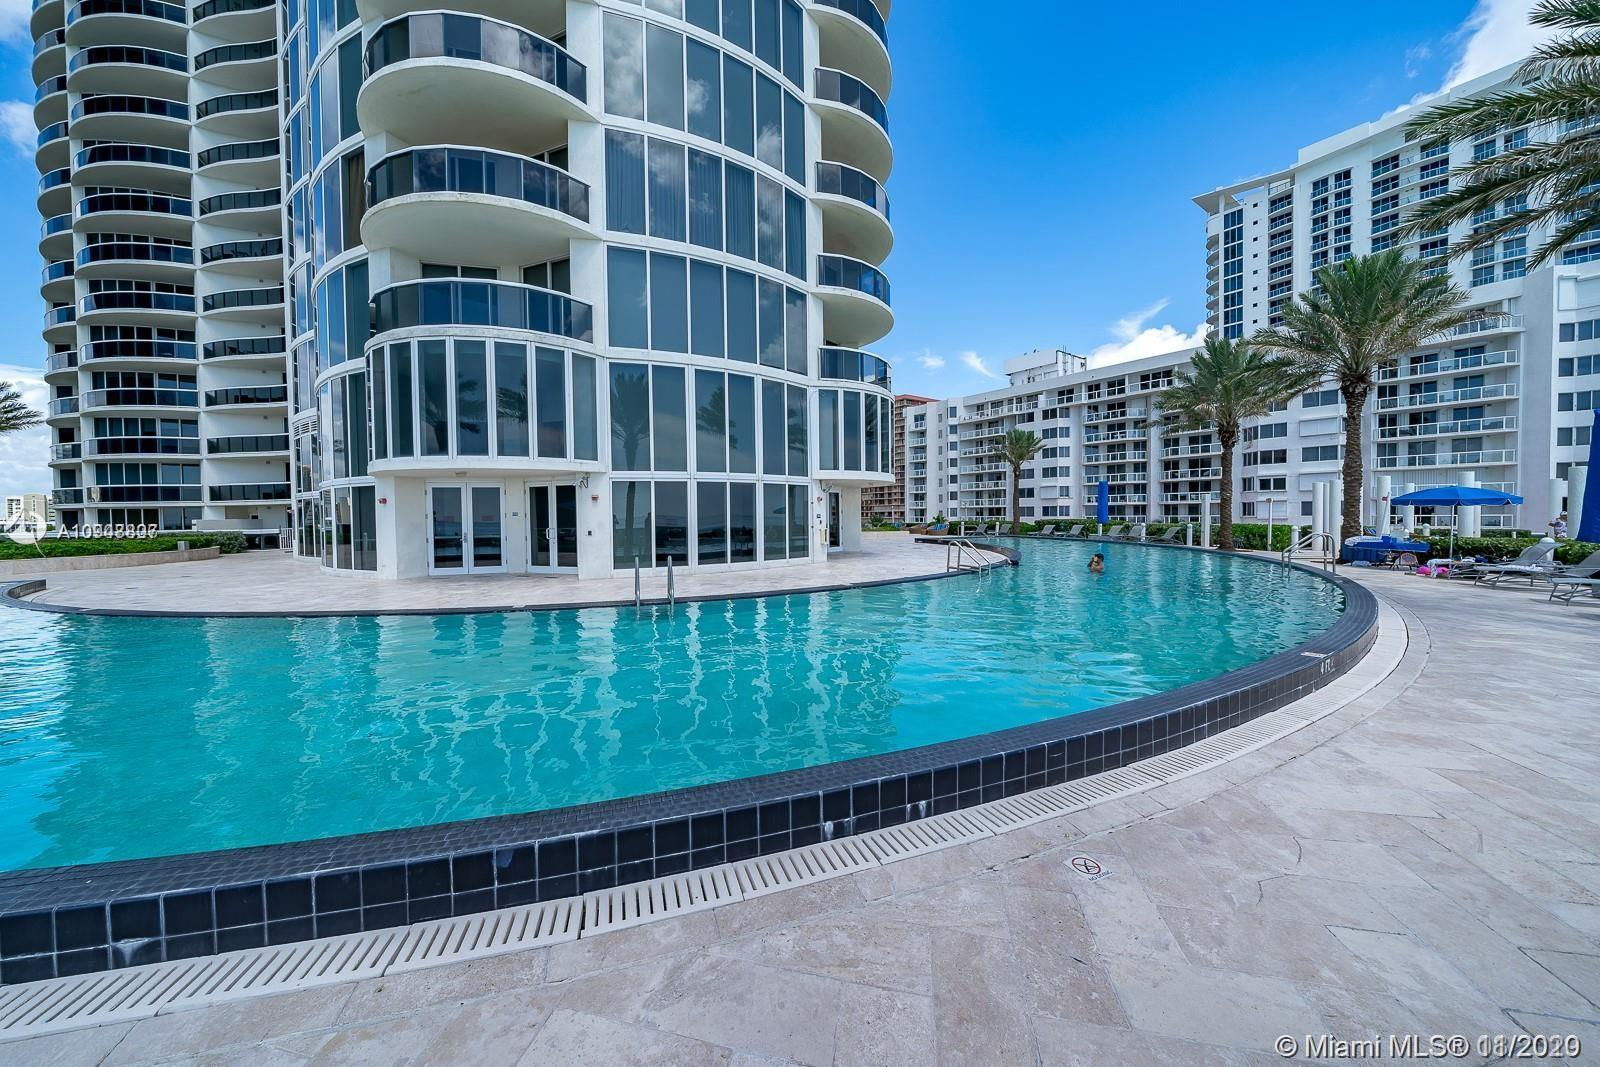 LUXURY OCEANFRONT BUILDING, DIRECT OCEANFRONT VIEW, FURNISHED 2 BEDROOMS 2 BATHROOMS, MARBLE AND WOO